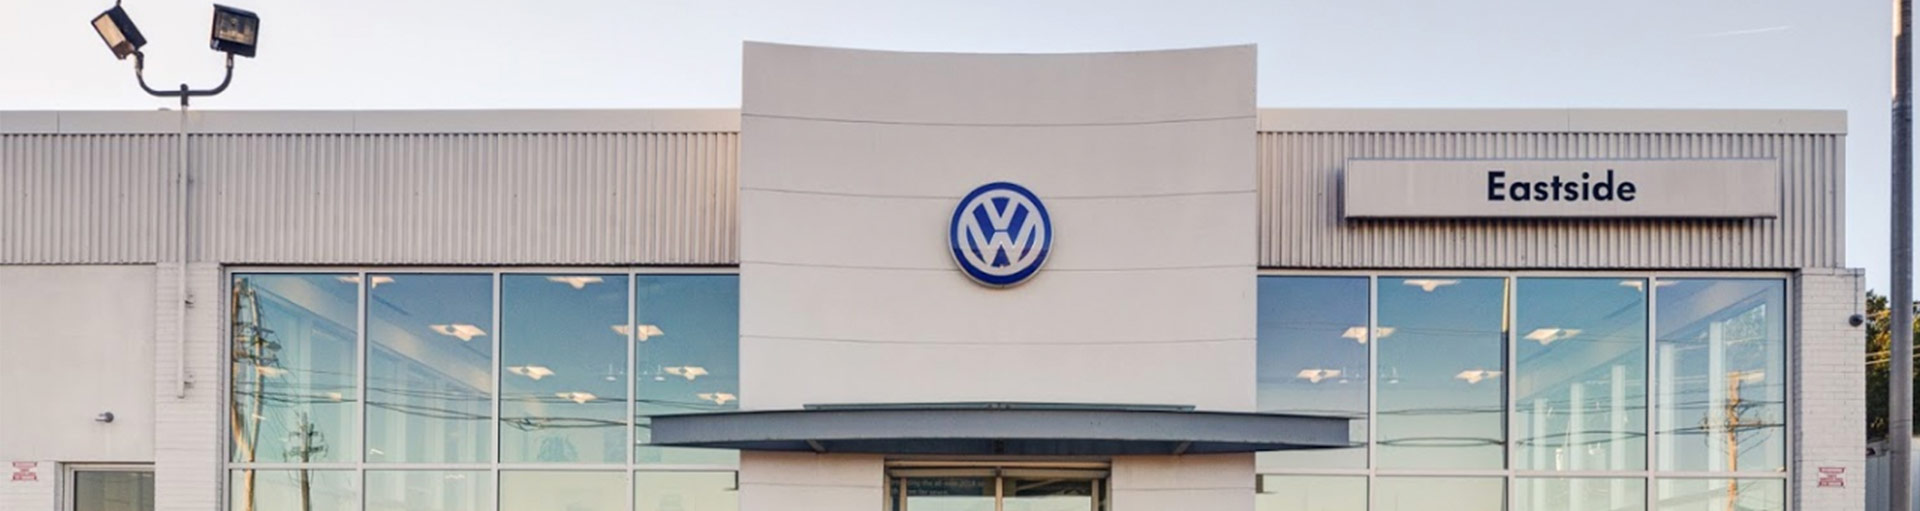 Eastside Volkswagen Tire Rotation Service